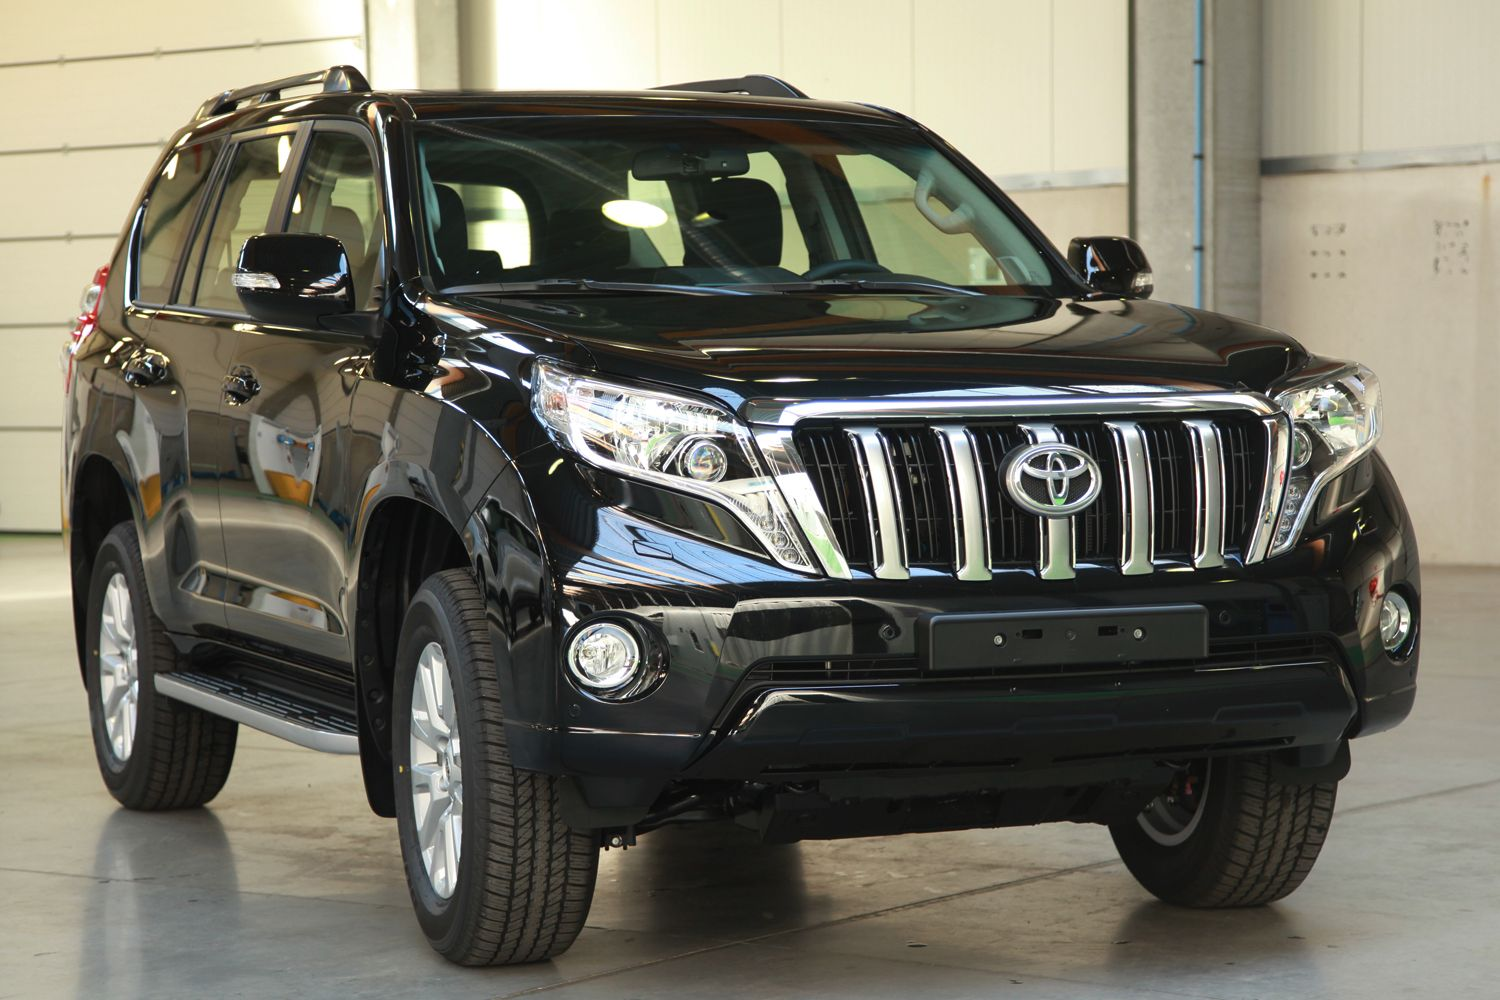 Toyota Prado Vx 2018 3 0 Liter Automatic Transmission Price In